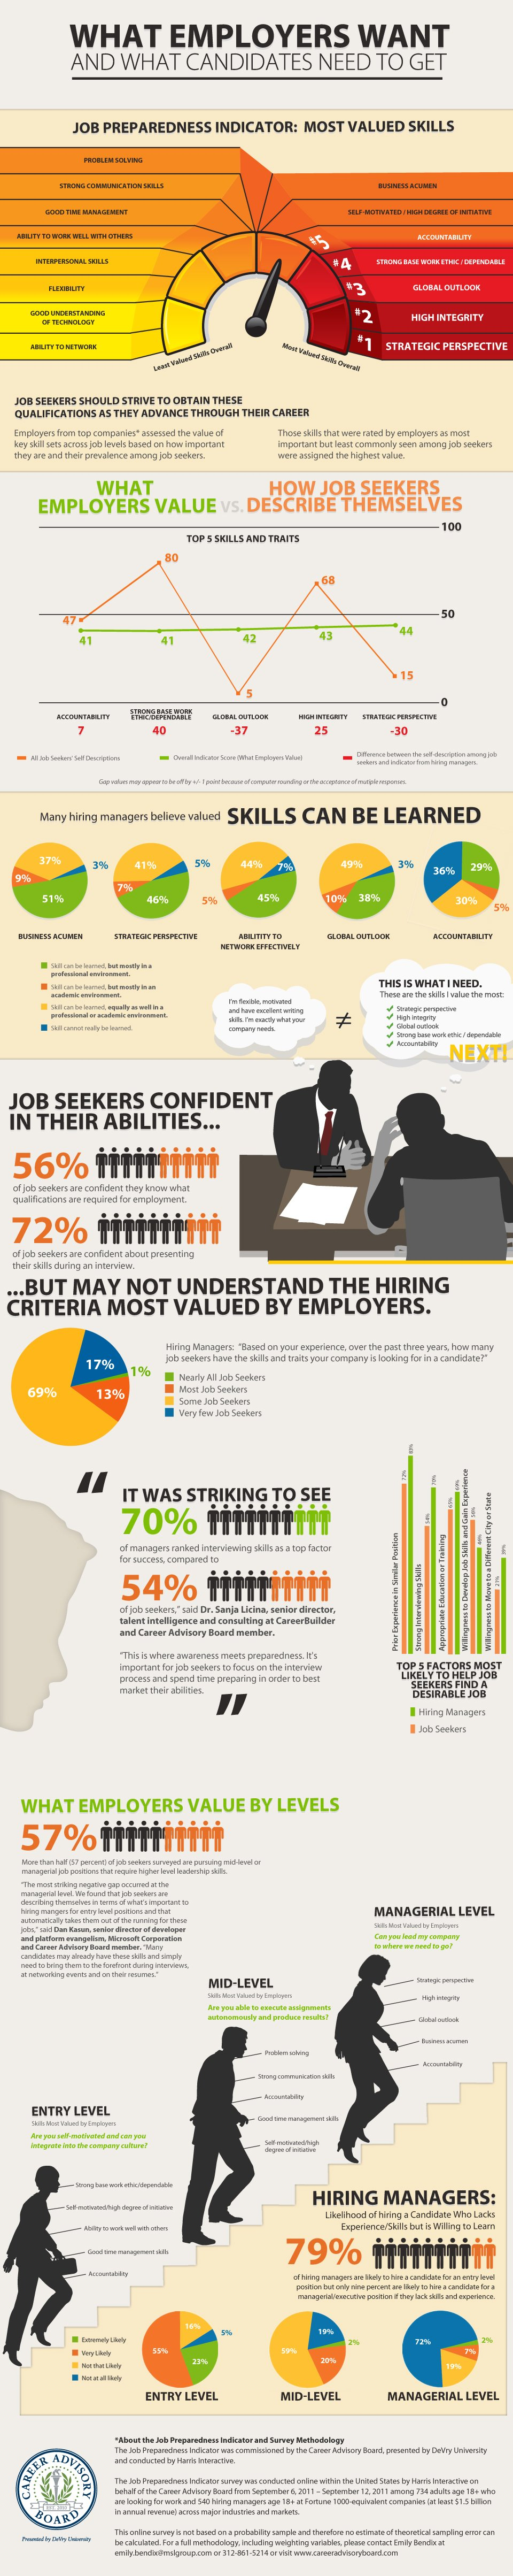 what employers want and what candidates need to get